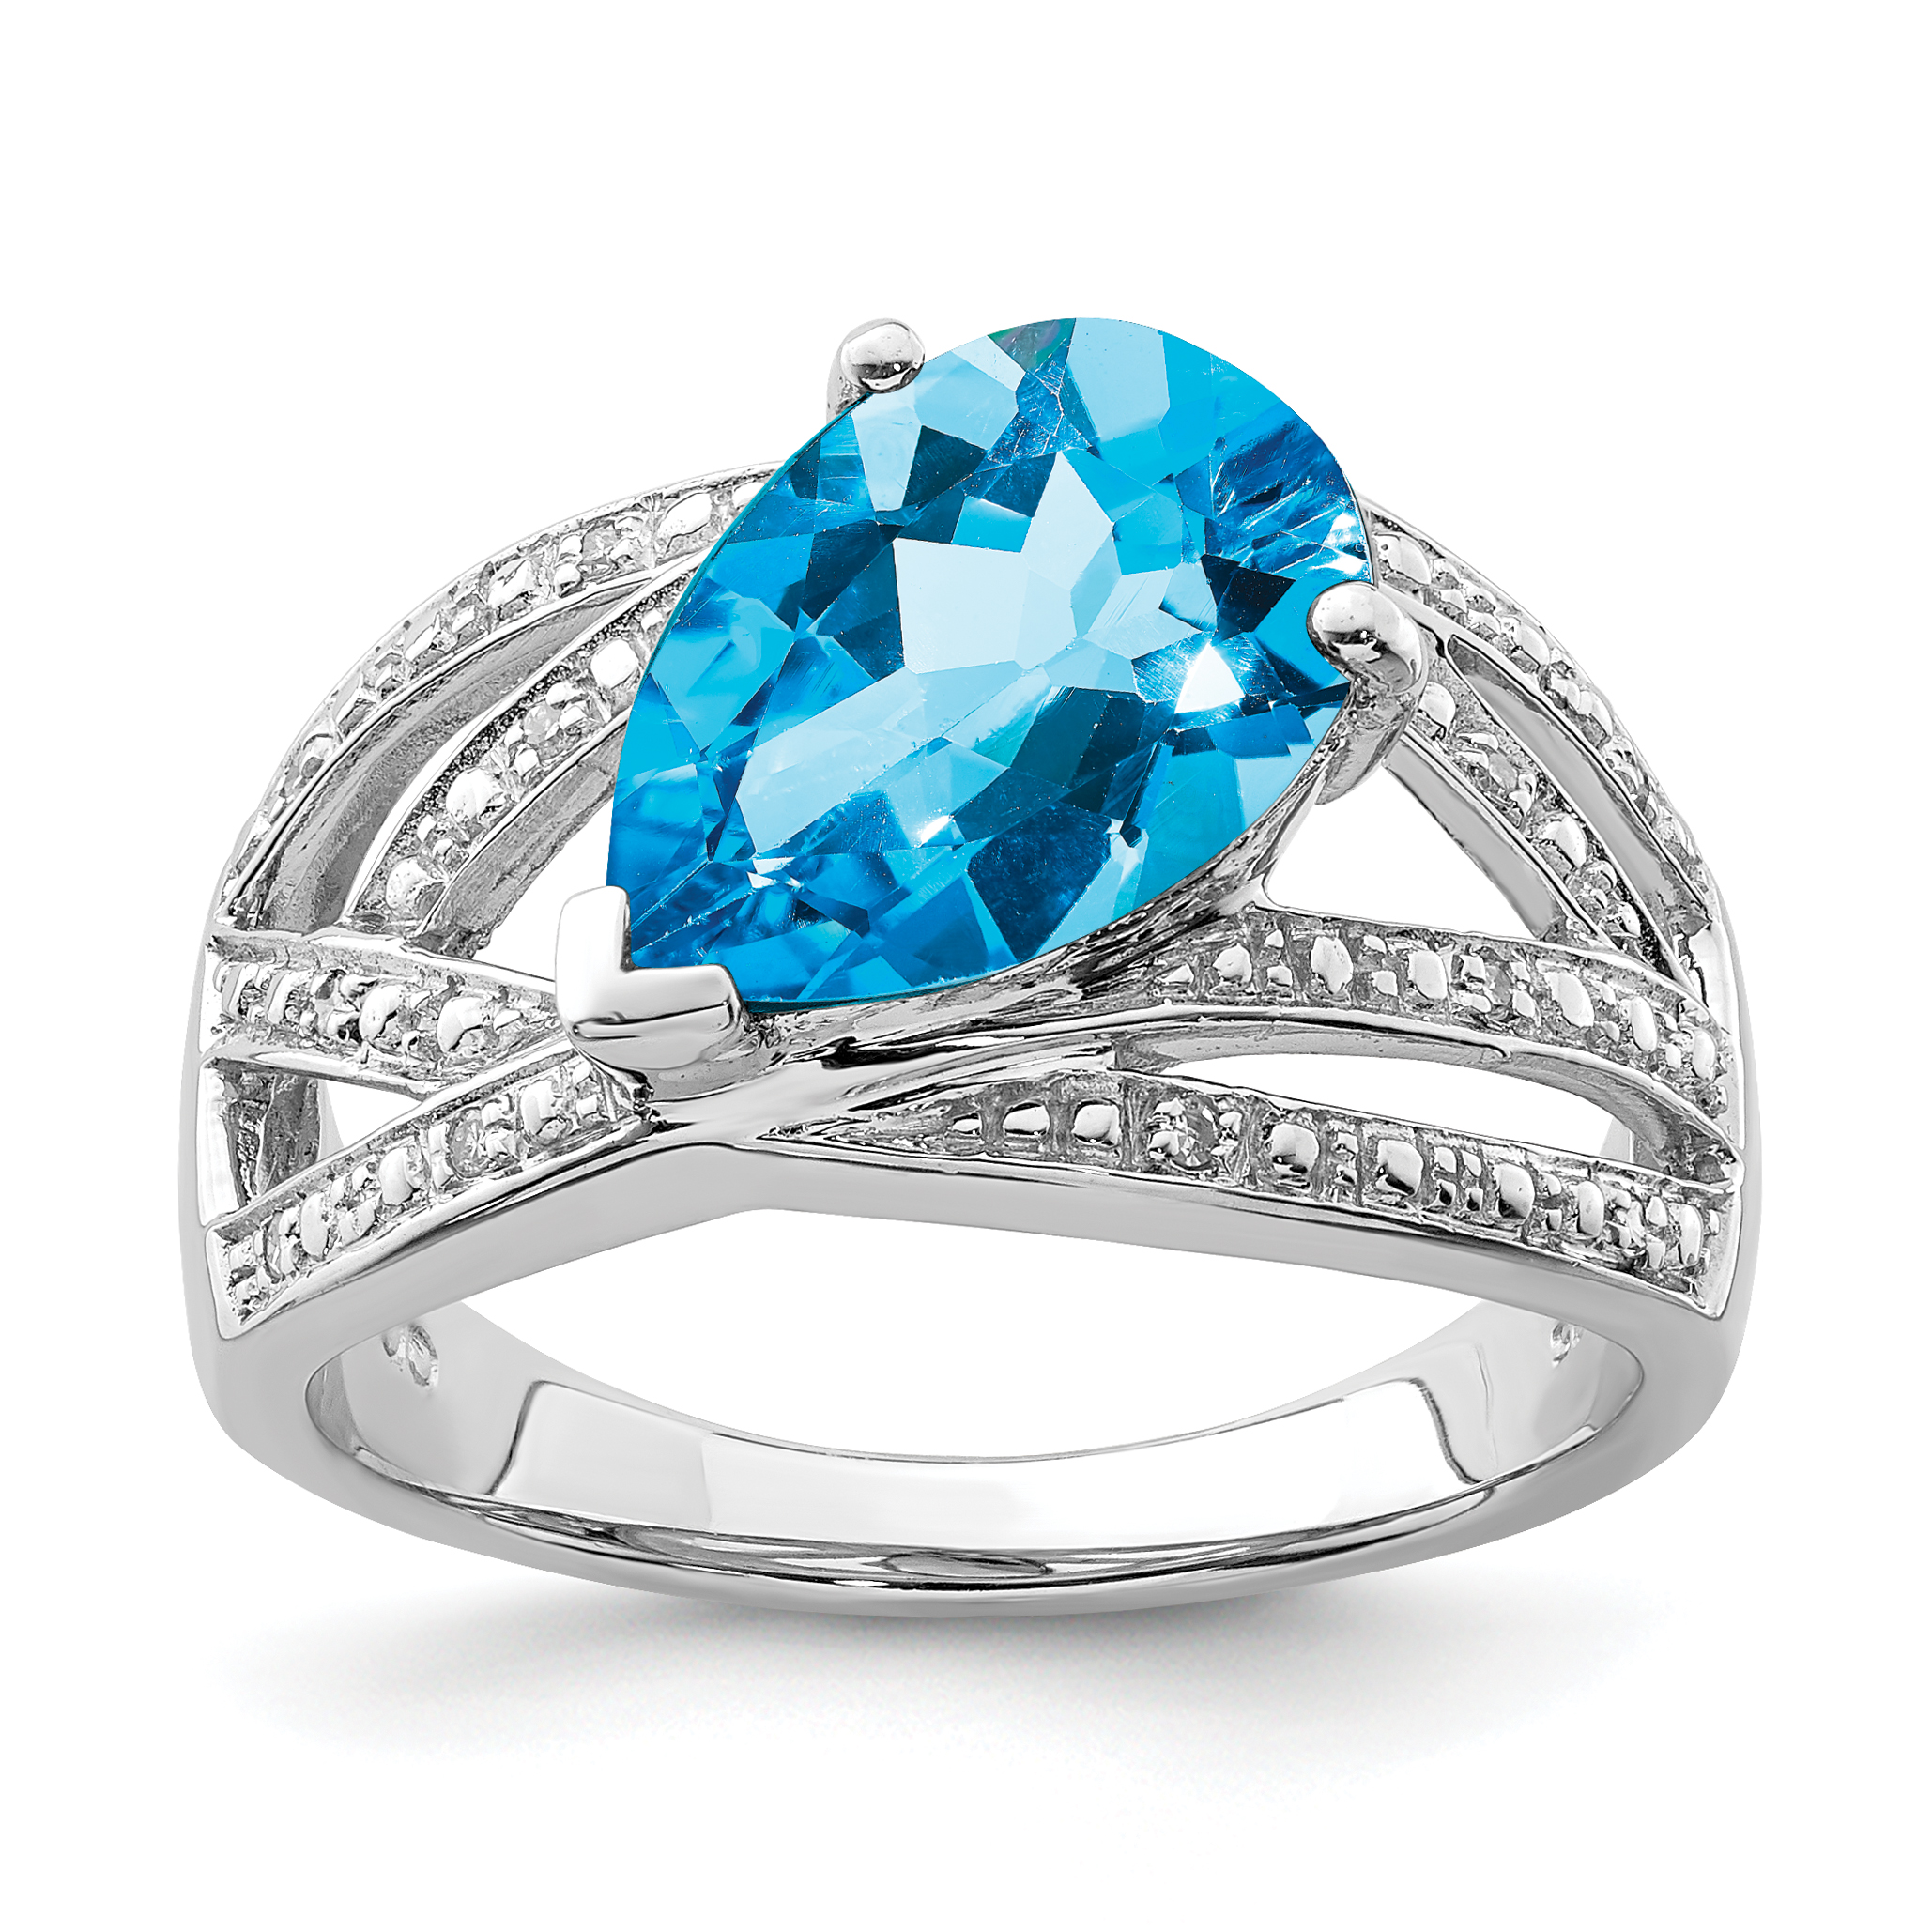 925 Sterling Silver Diamond London Blue Topaz Band Ring Size 9.00 Gemstone Fine Jewelry Gifts For Women For Her - image 2 of 2